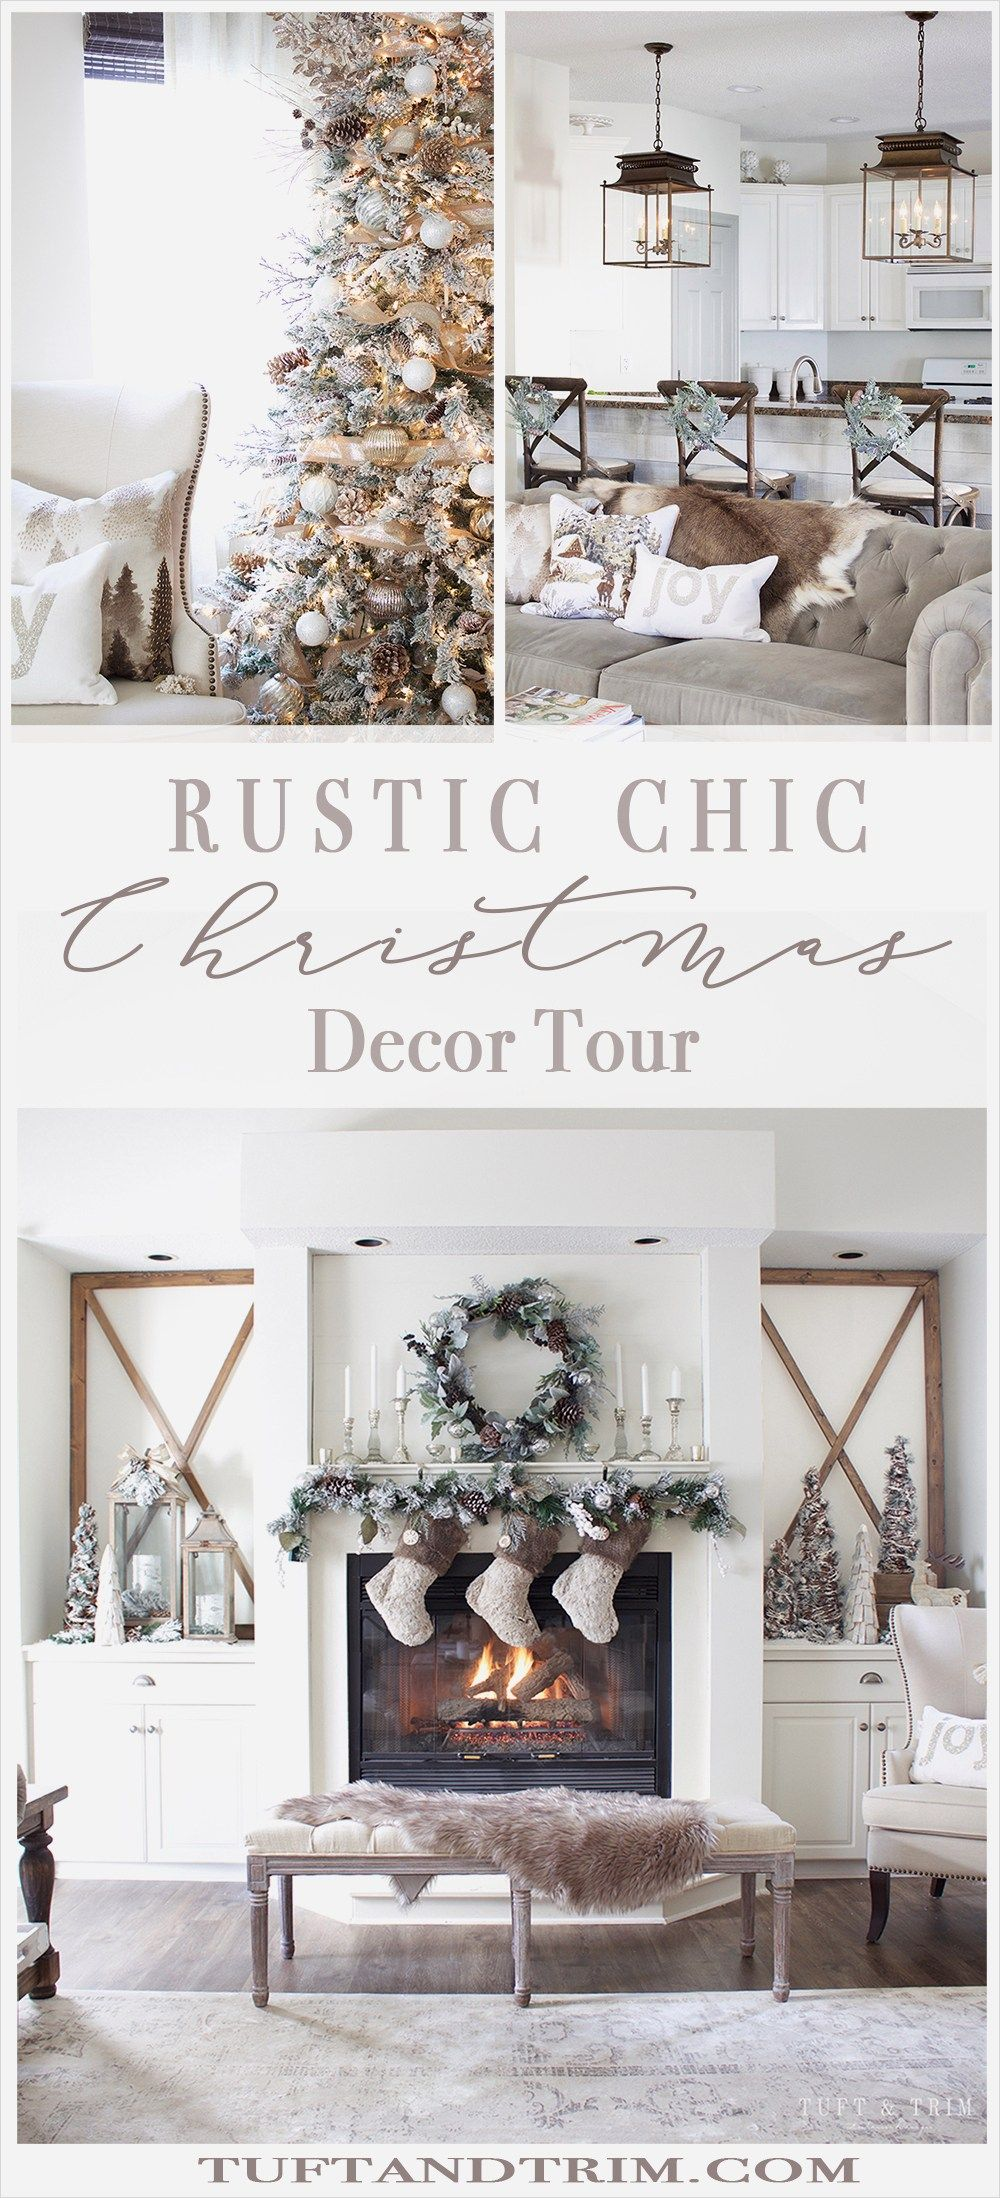 42 Beautiful Rustic Chic Christmas Decoration Ideas